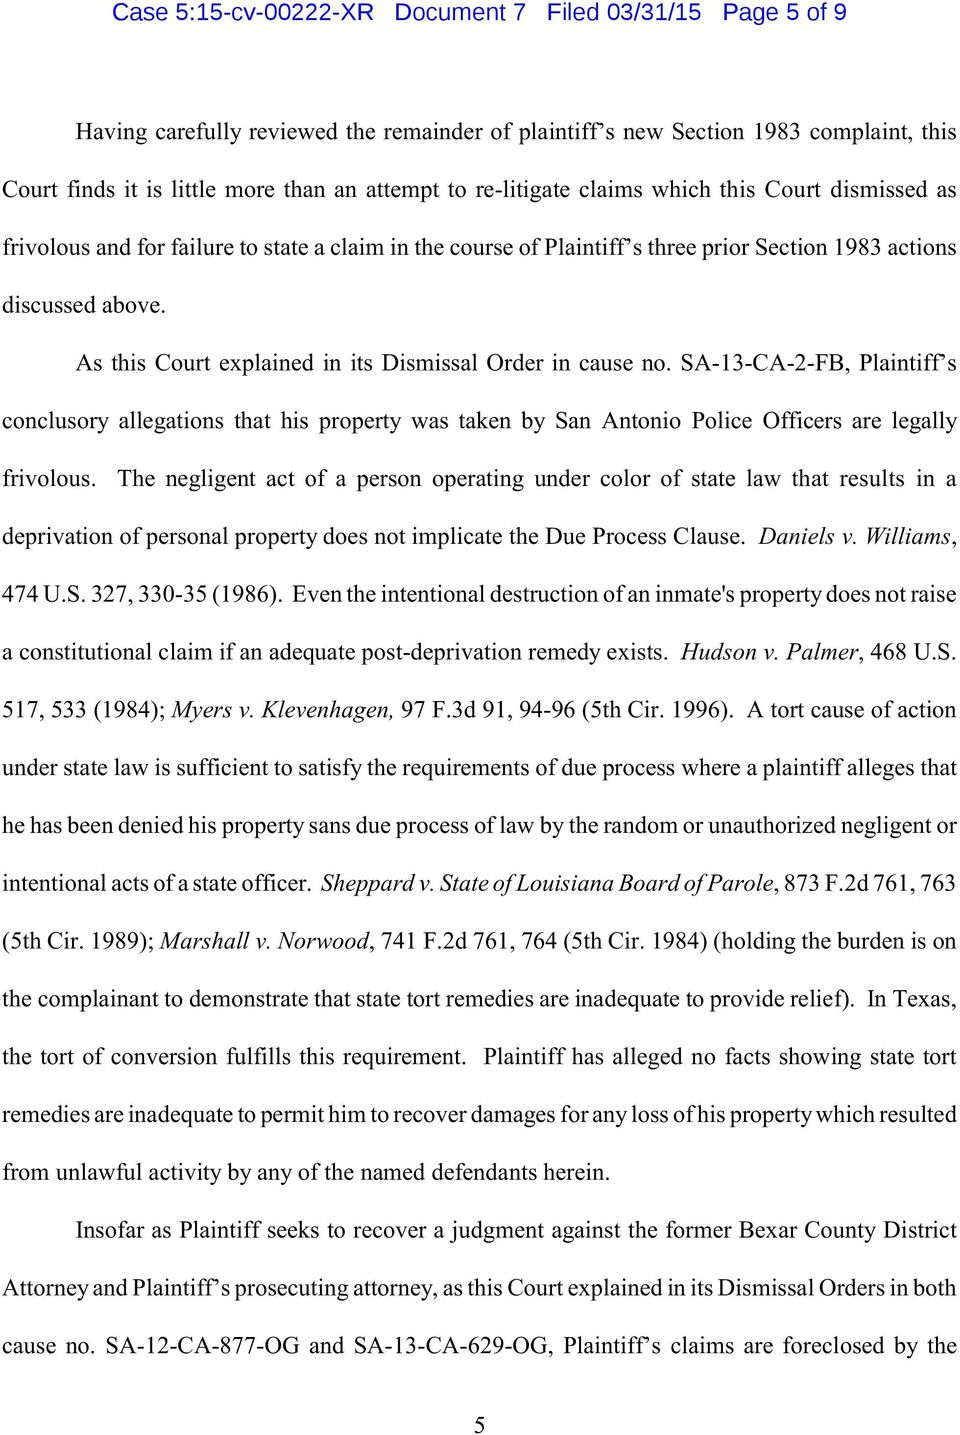 As this Court explained in its Dismissal Order in cause no. SA-13-CA-2-FB, Plaintiff s conclusory allegations that his property was taken by San Antonio Police Officers are legally frivolous.